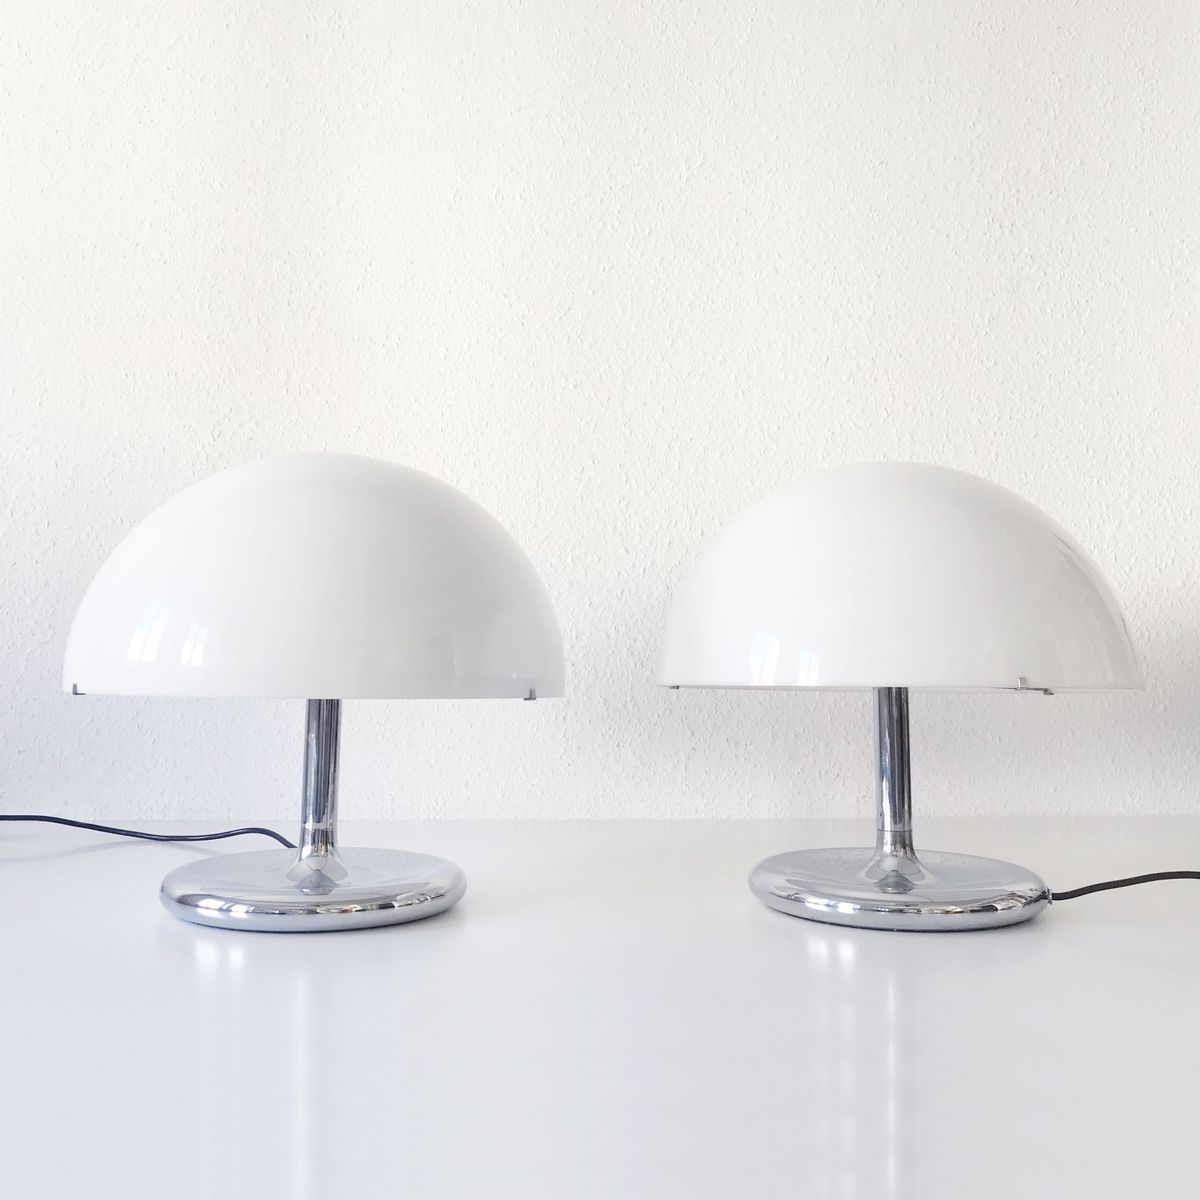 Mid century modern table lamps 1970s set of 2 for sale at pamono previous aloadofball Gallery